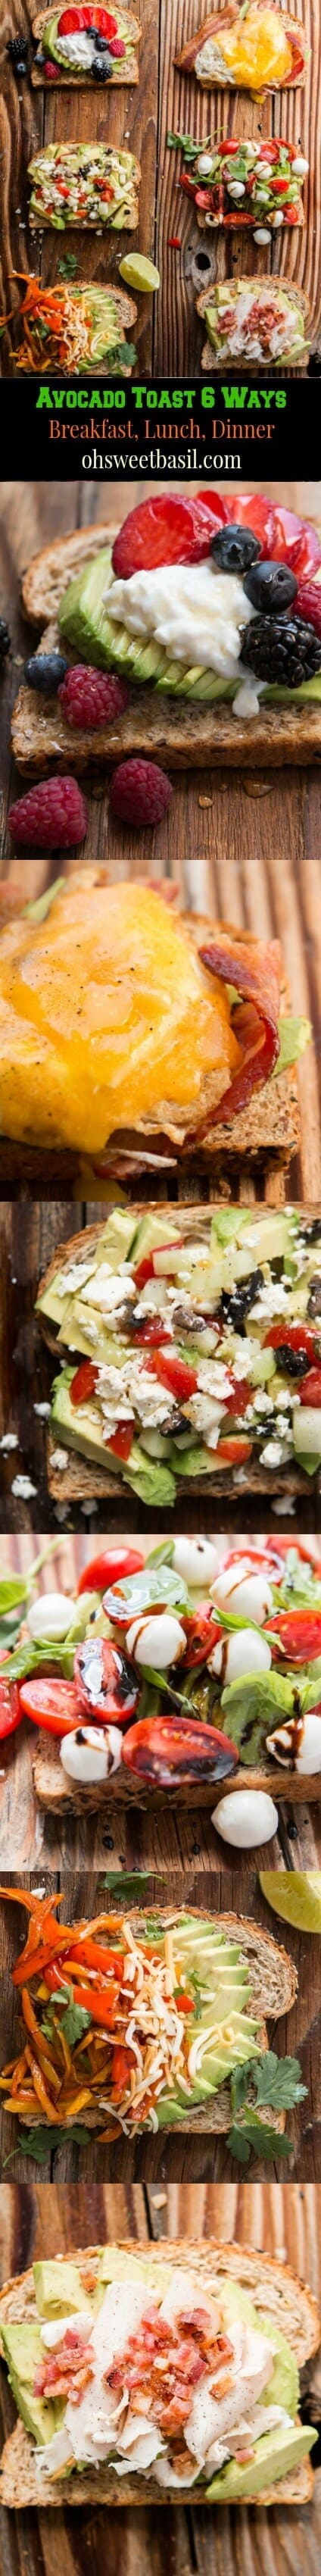 Avocado Toast for breakfast lunch and dinner. I think the caprese is my favorite, wait or the berry, gosh I don't know ohsweetbasil.com